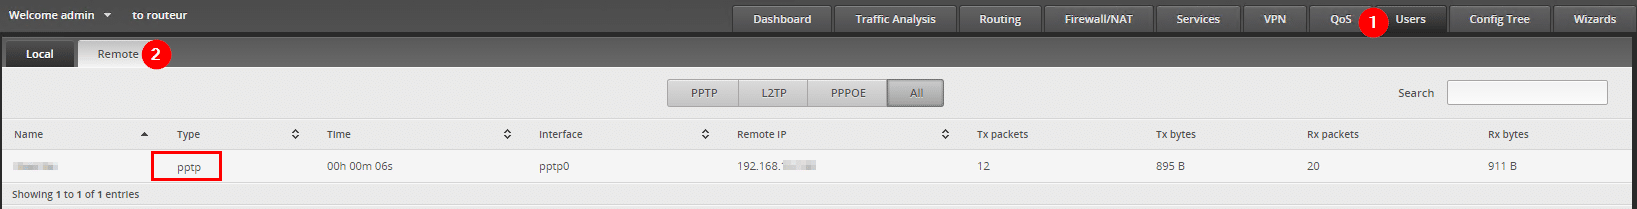 ERL configure a VPN PPTP - users